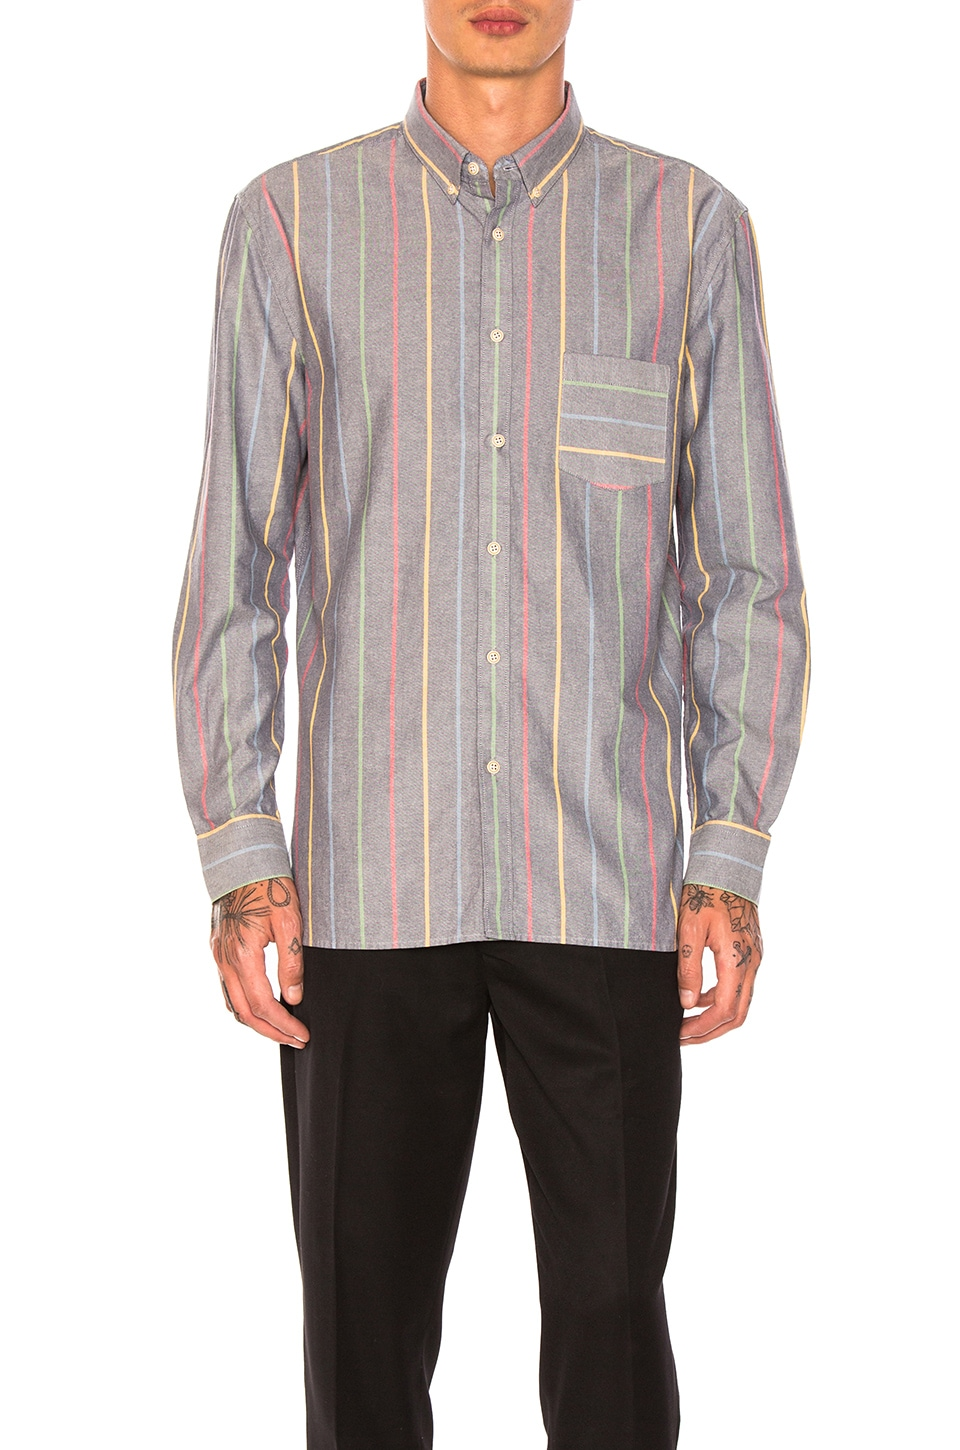 Skiffy Shirt In Stripe by Barney Cools